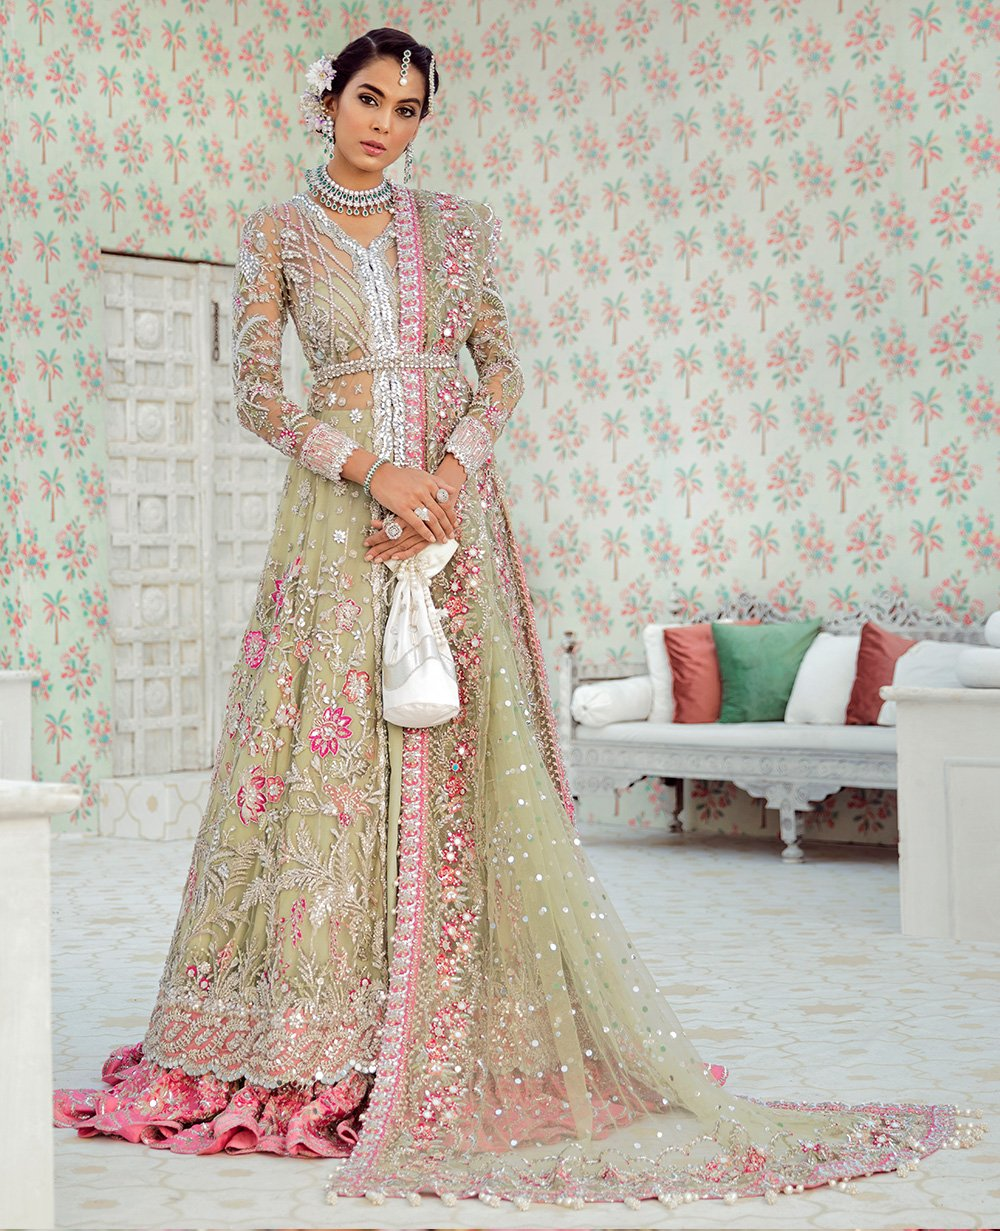 Dumore Cream and Carnation Pink Jacket Lehenga